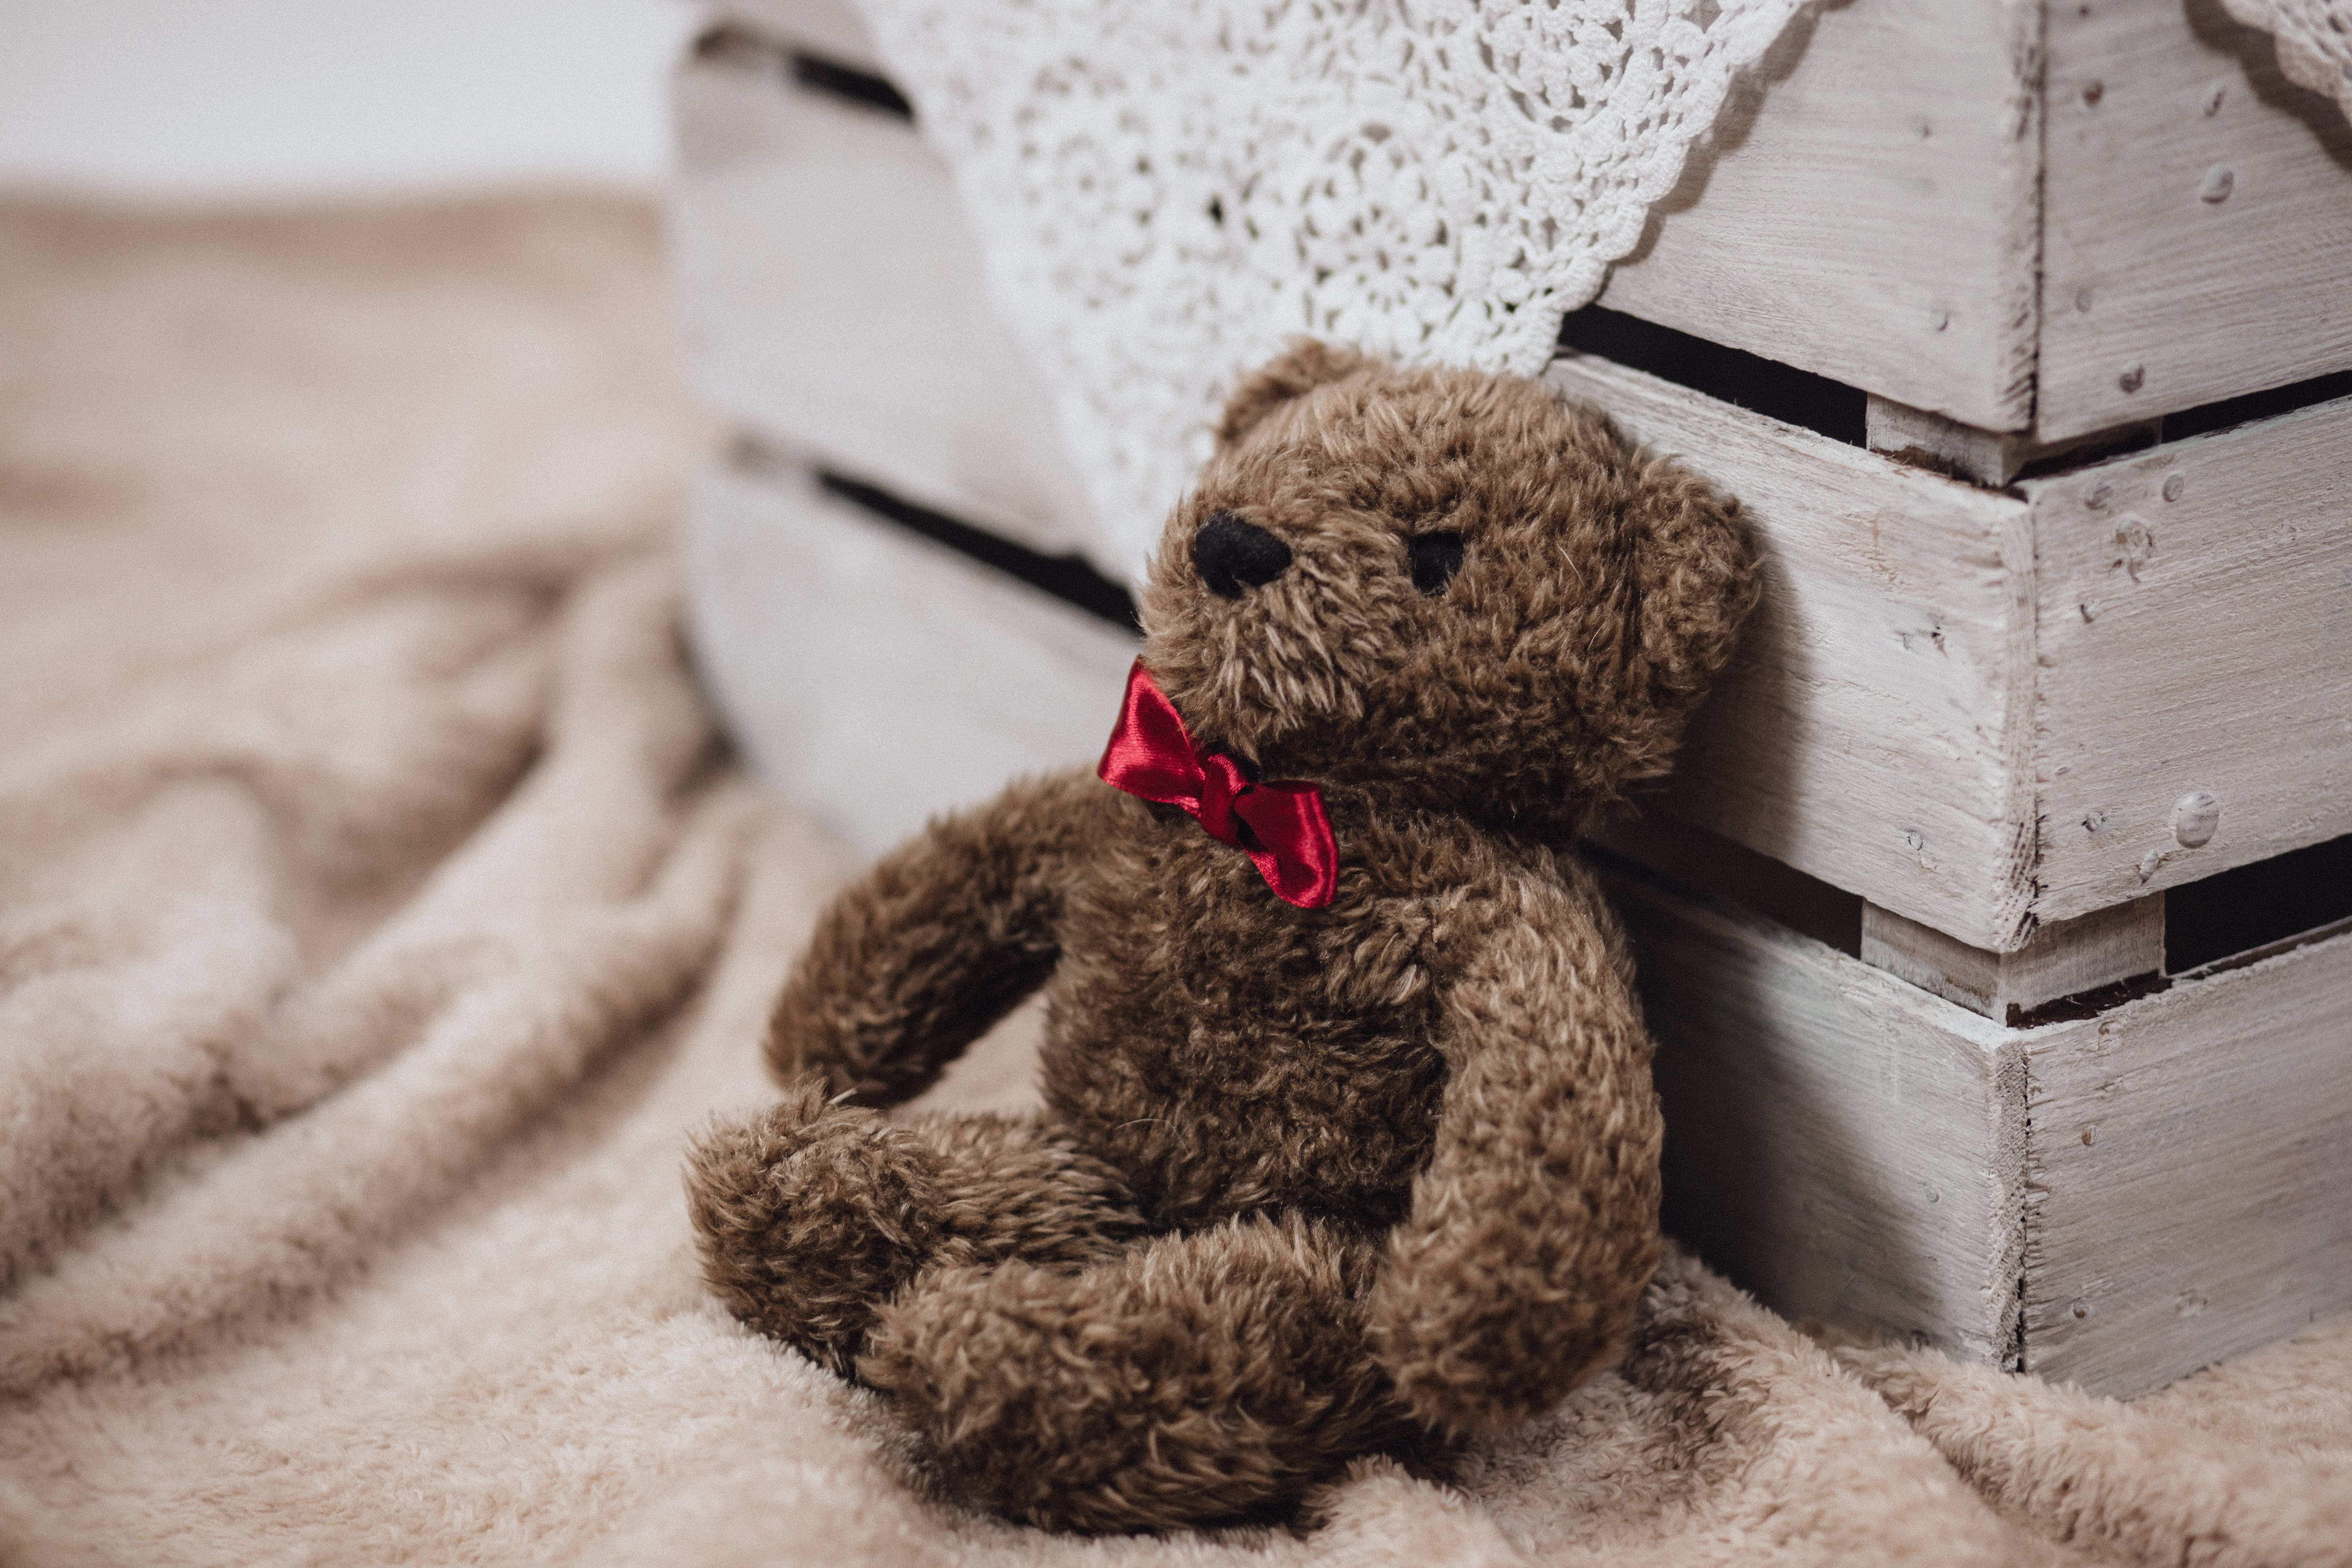 Free stock photo of cute, teddy bear, toy, stuffed toy